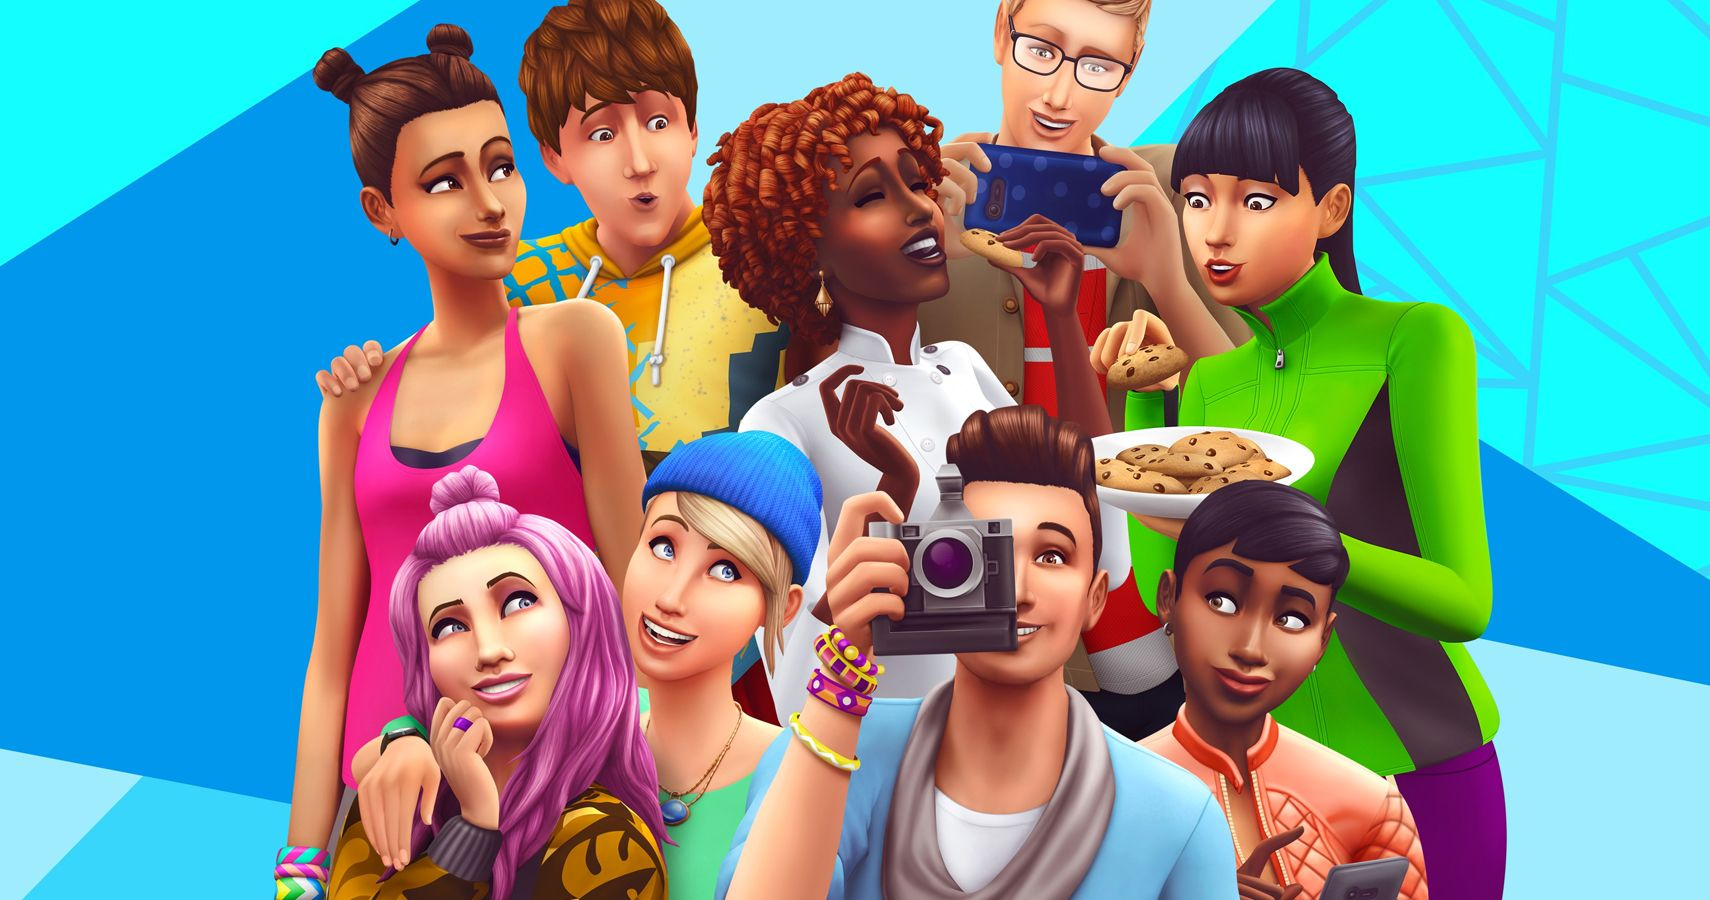 Mod The Sims: 10 Best Sims 4 Custom Content From The Site